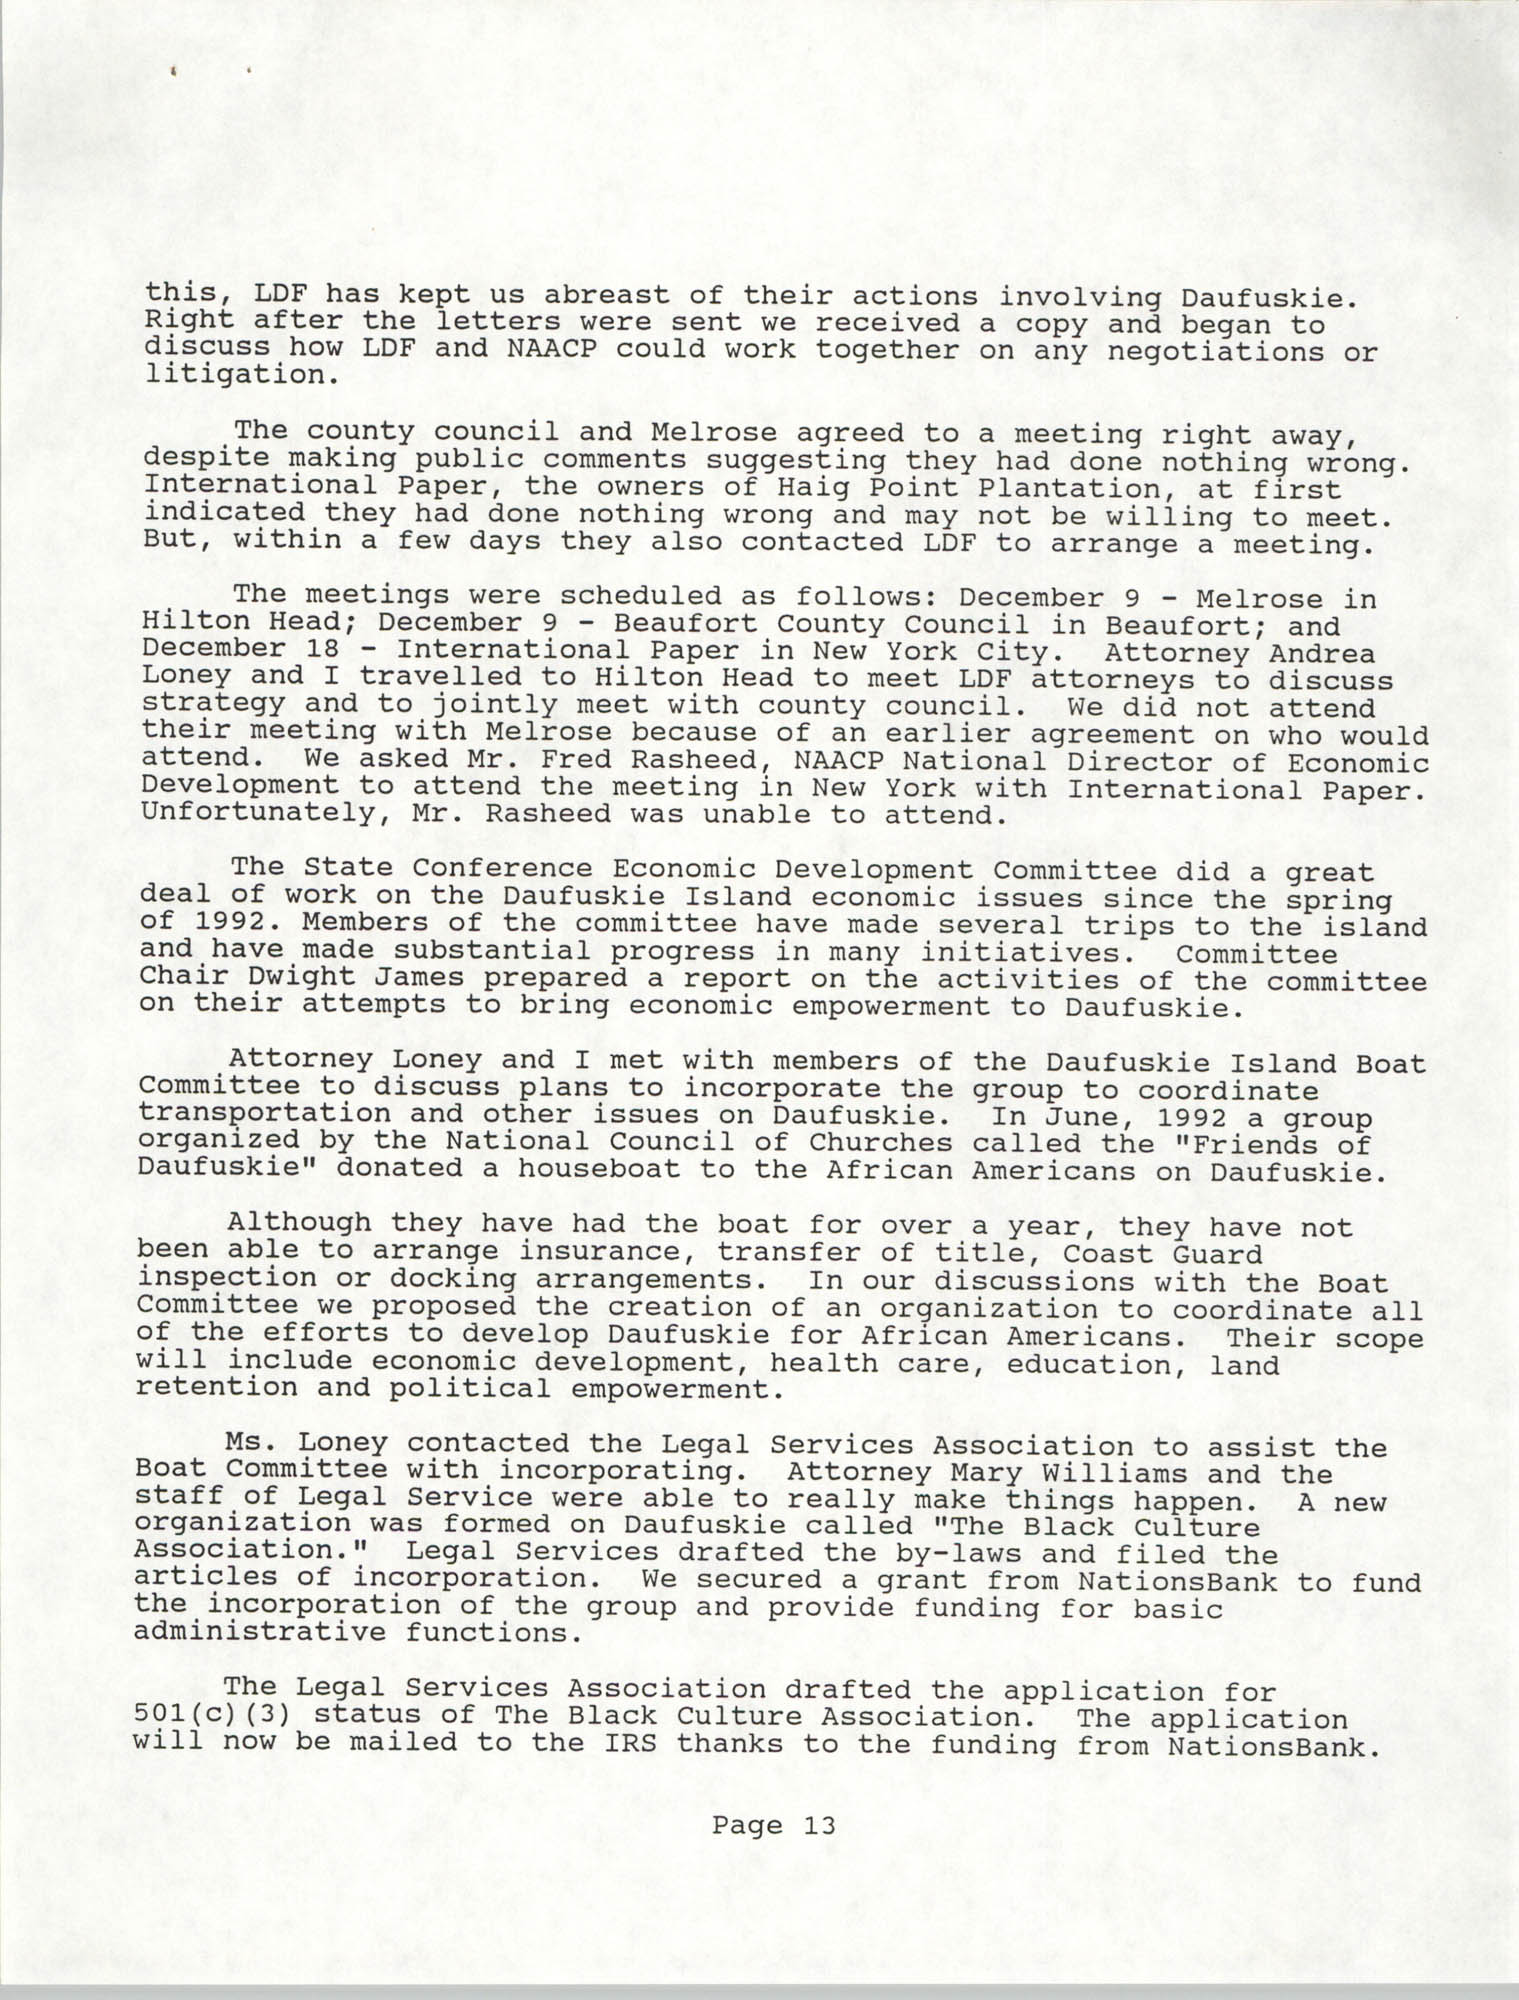 South Carolina Conference of Branches of the NAACP, Annual Report, October 9, 1993, Page 13